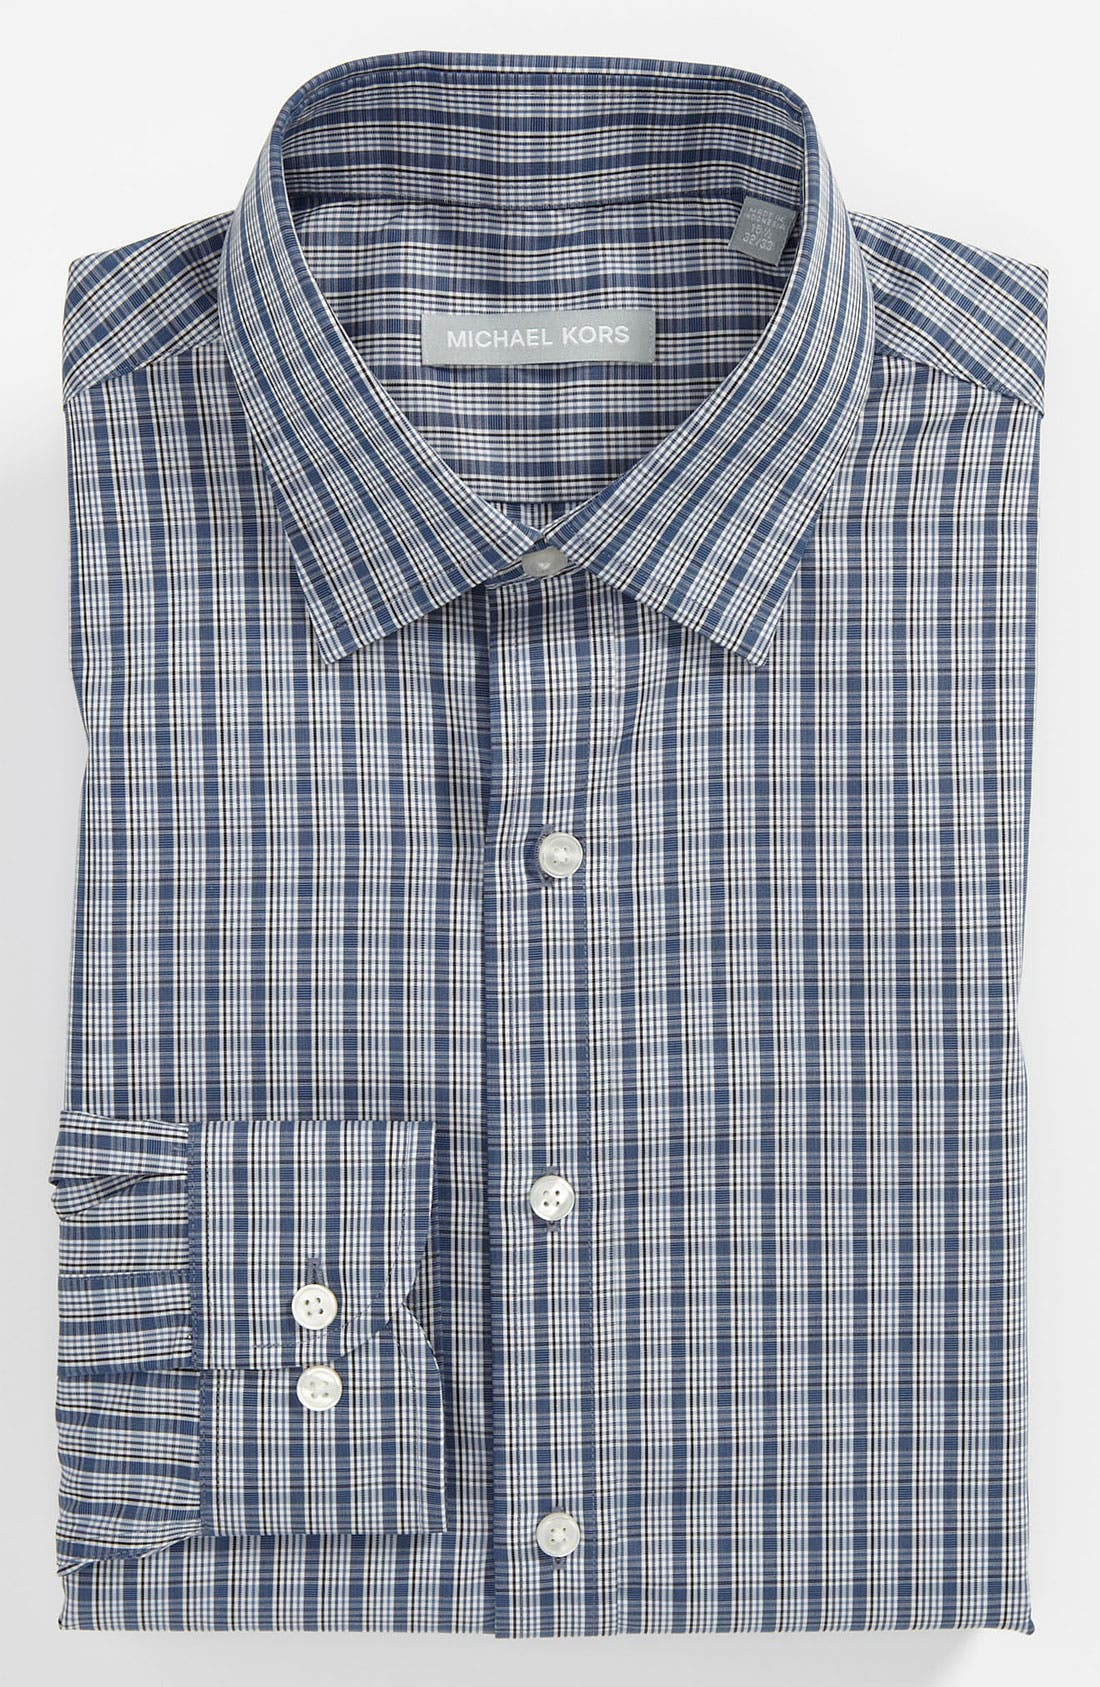 Alternate Image 1 Selected - Michael Kors Regular Fit Dress Shirt